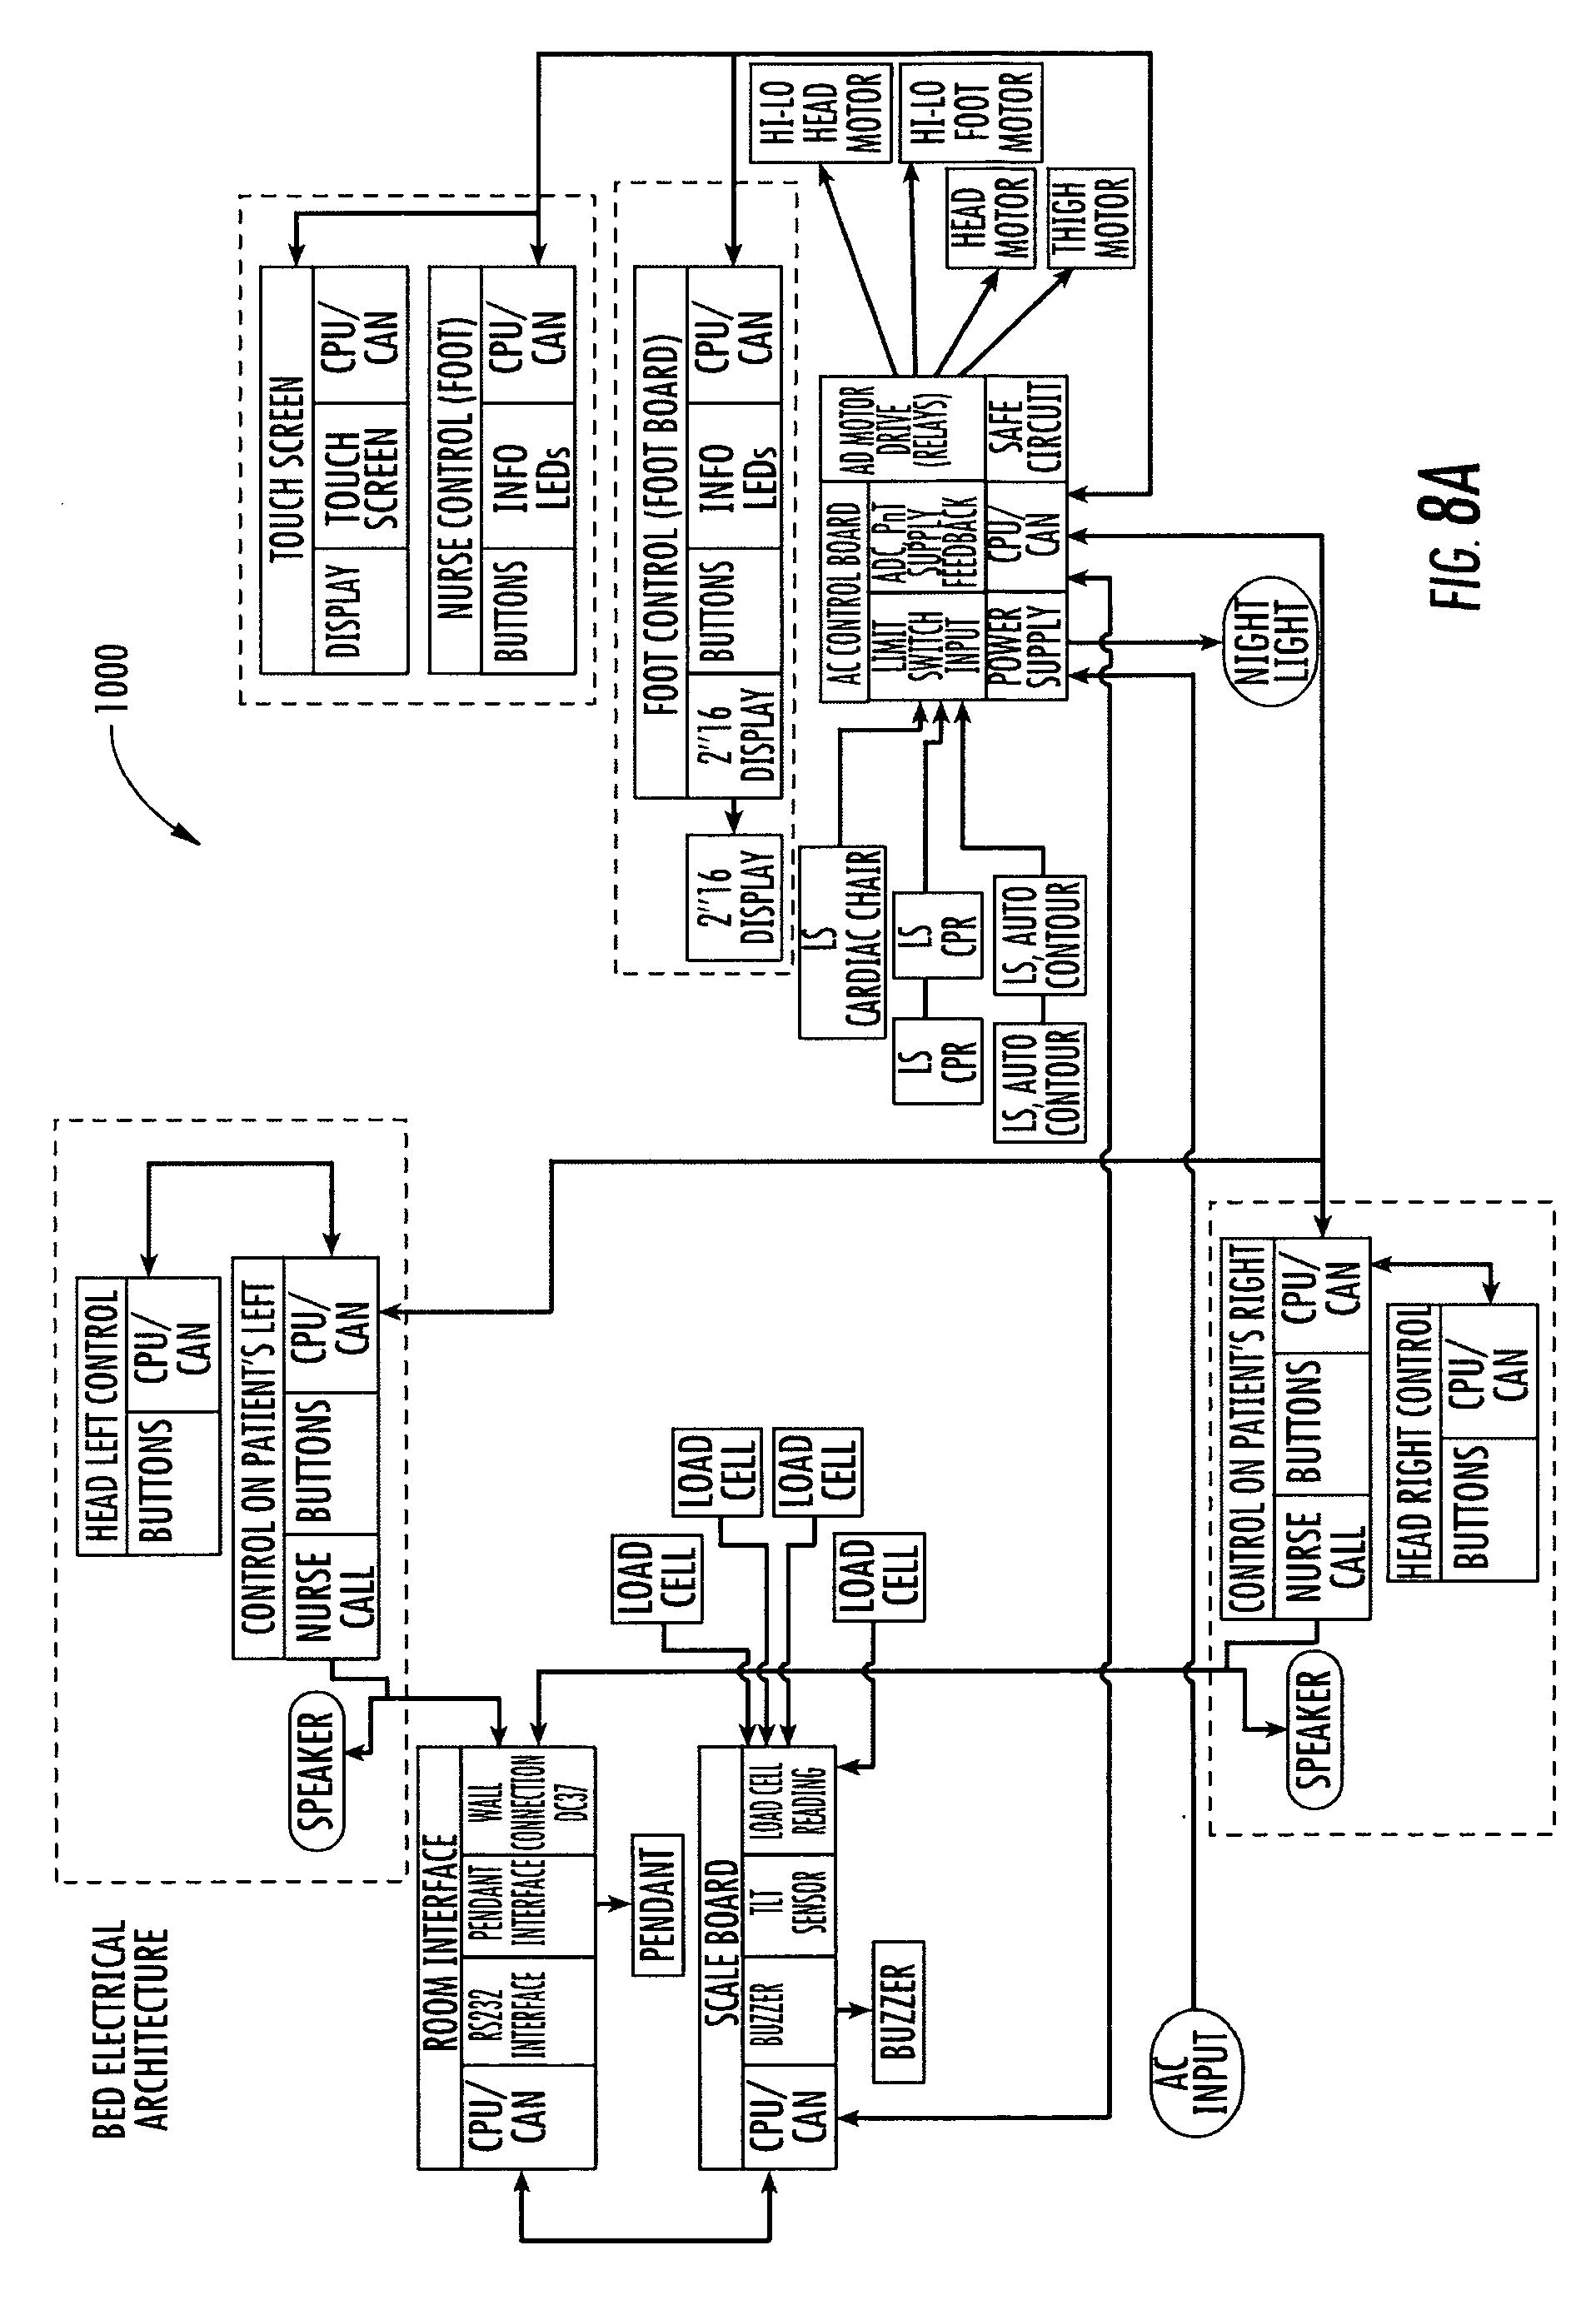 Hospital Bed Remote Control Wiring Diagrams Patent Us 7962981 B2 Images